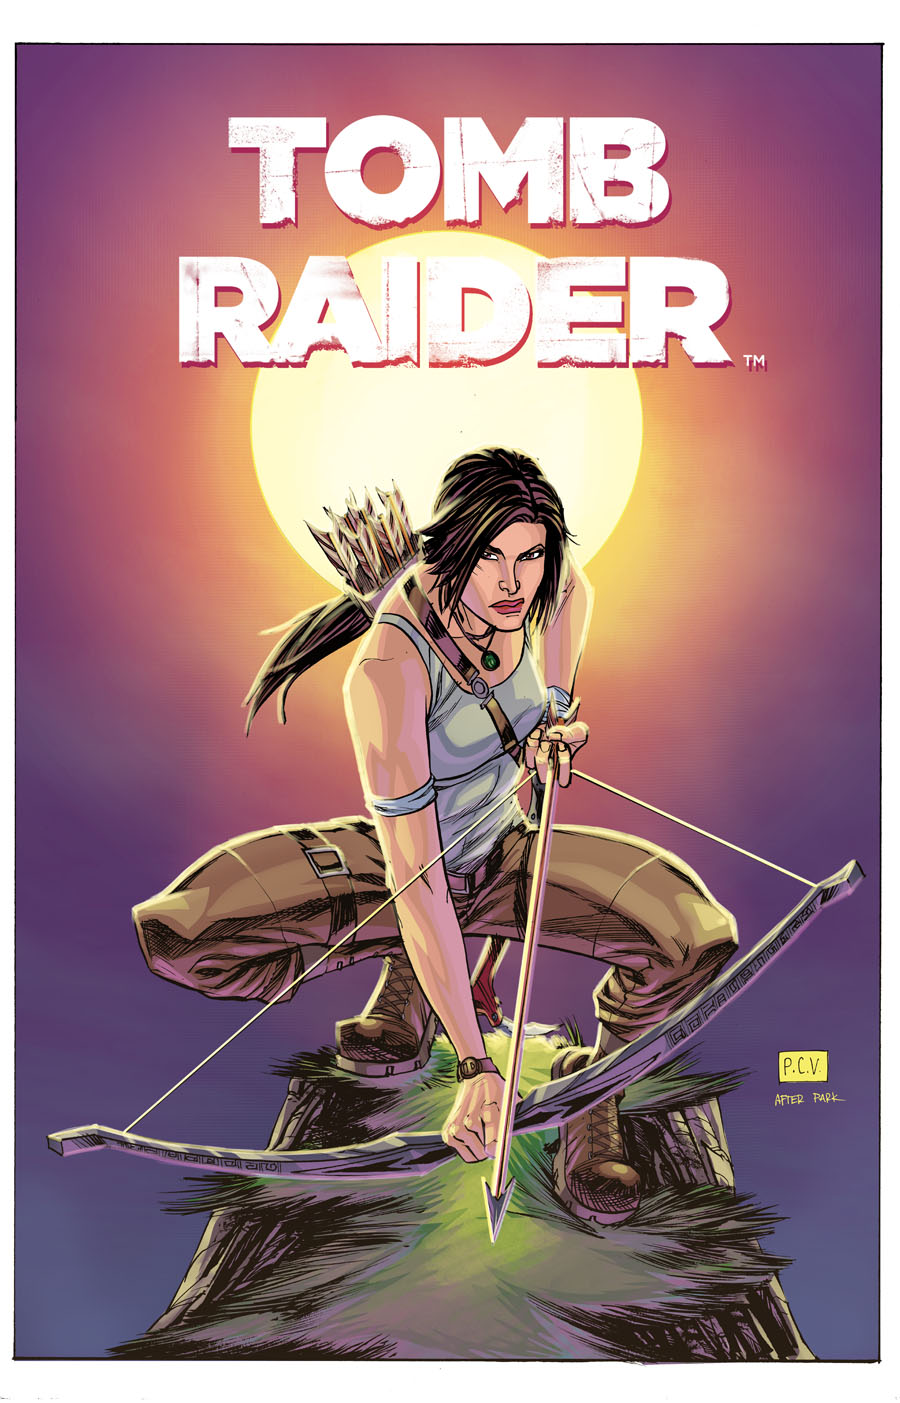 Tomb Raider 1 Cover Homage Limited Edition Print The Art Of